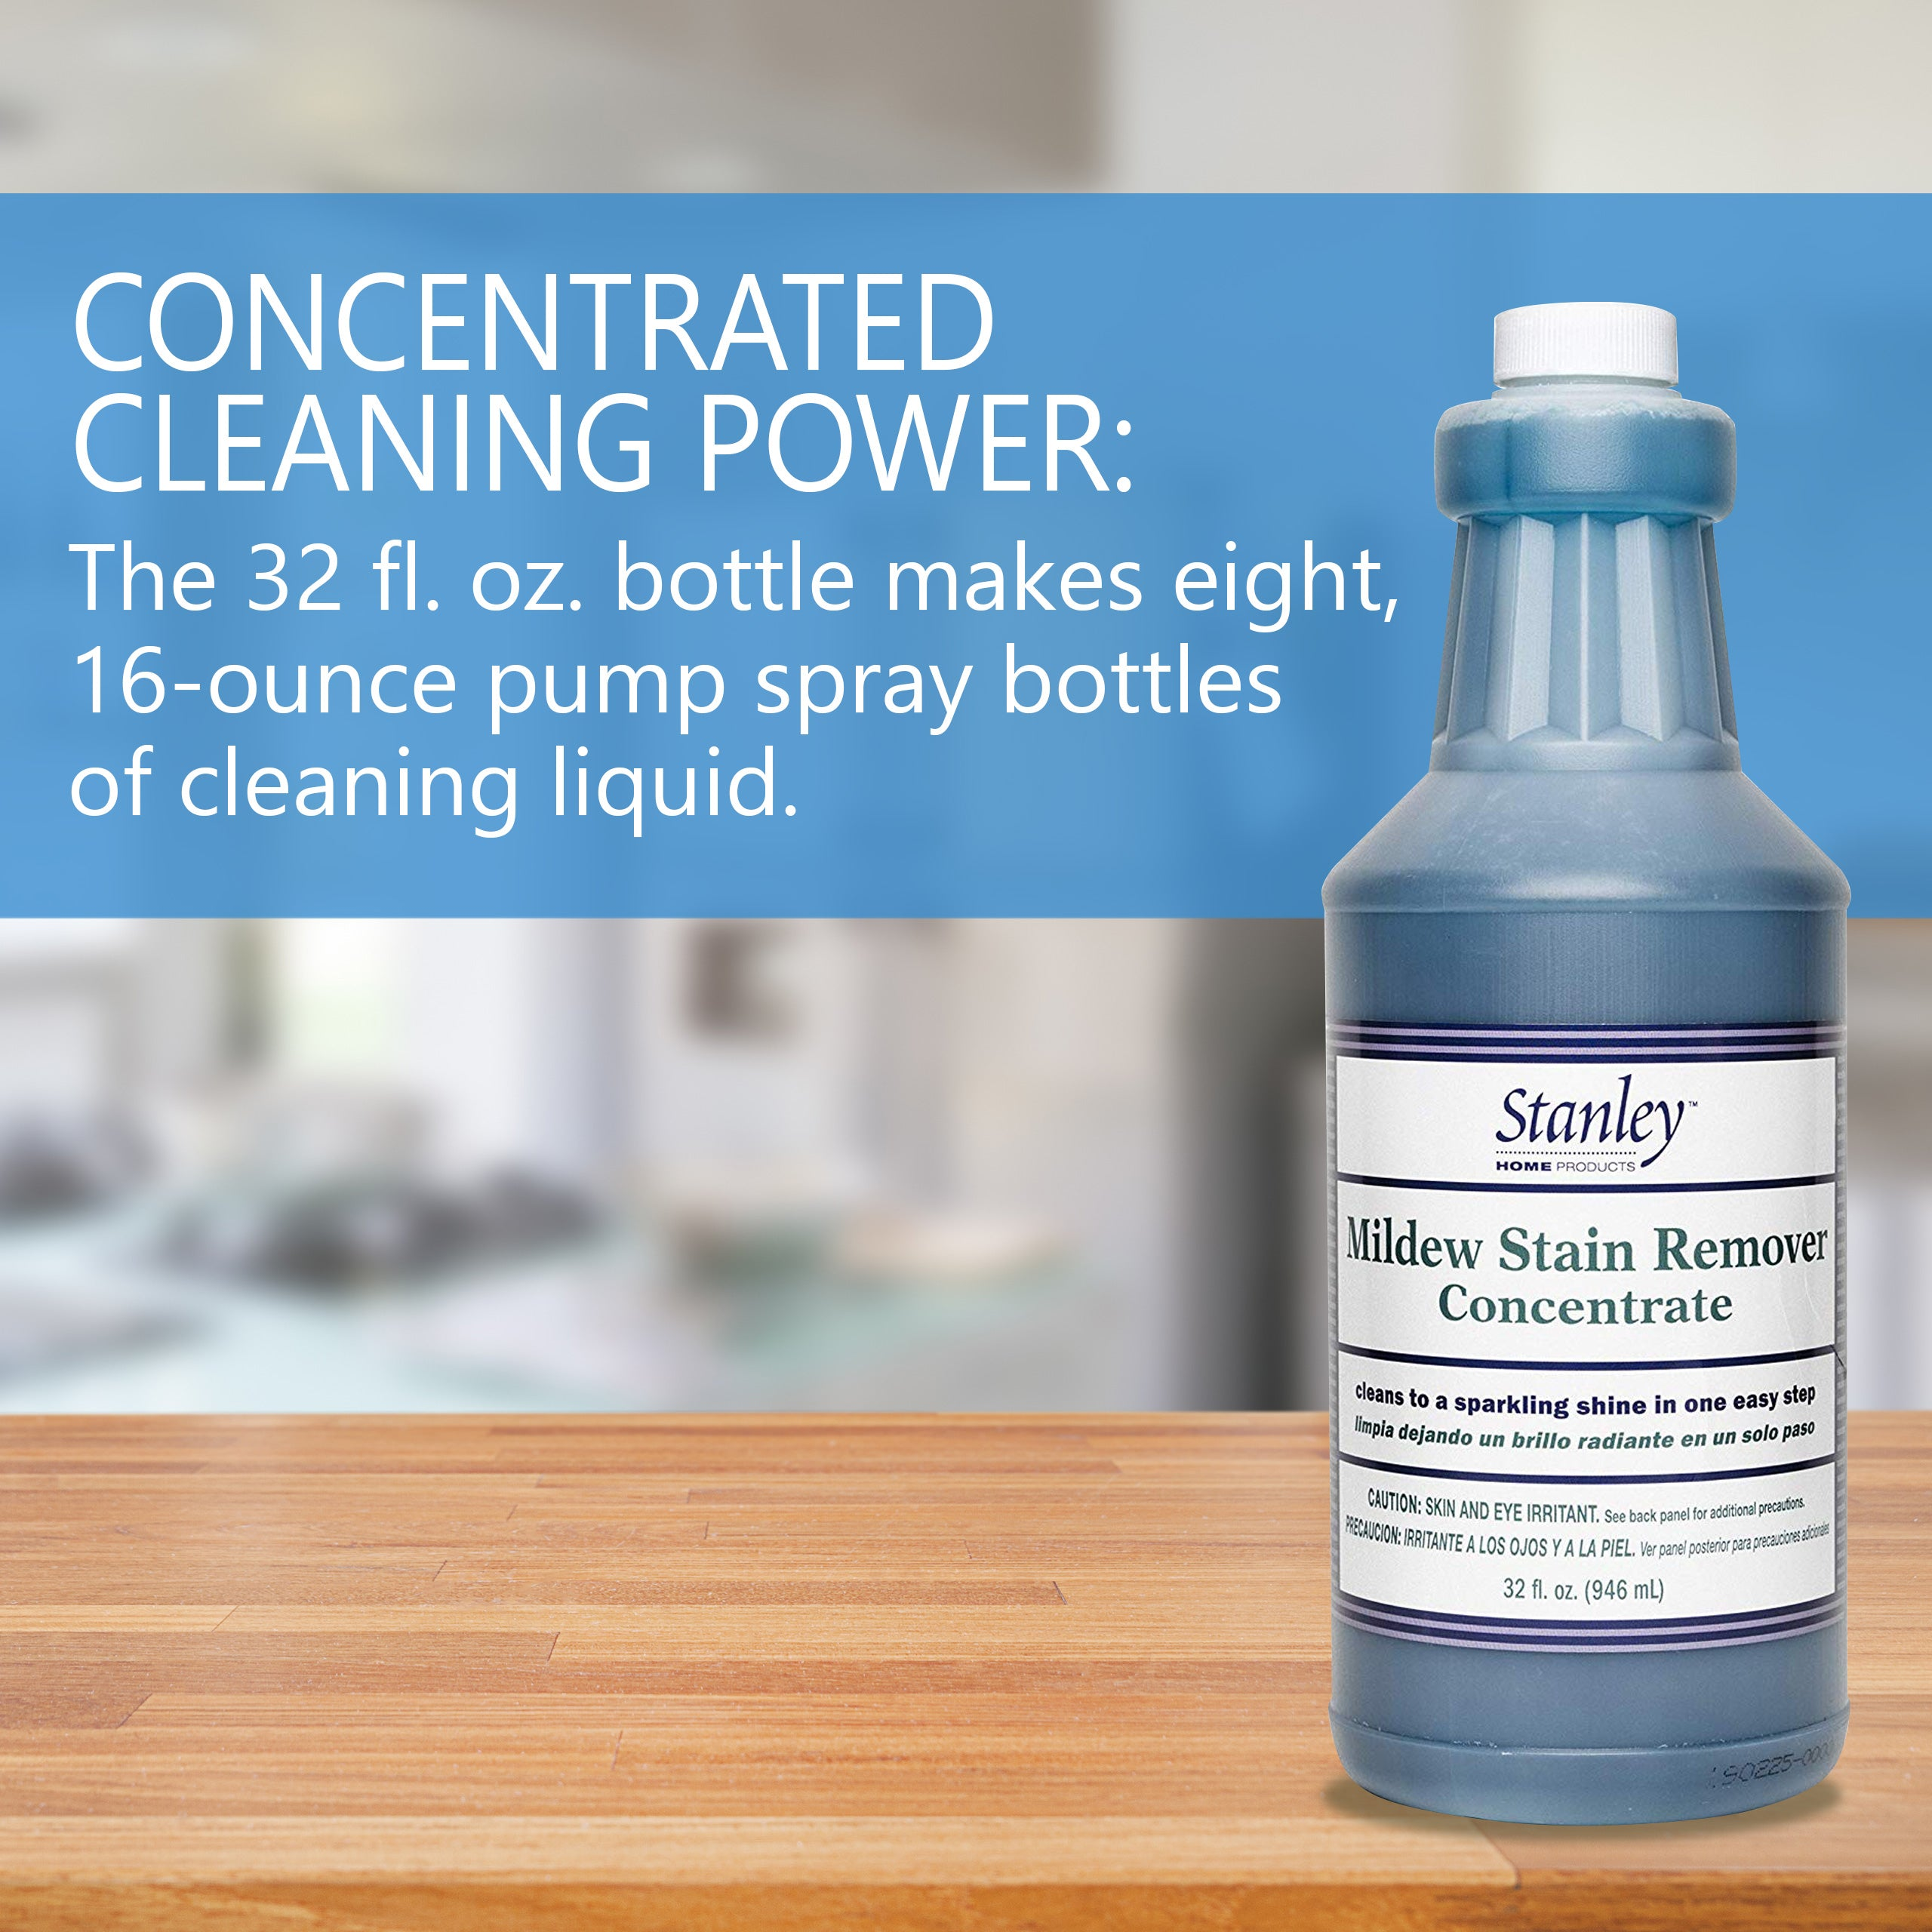 Mildew Cleaner & Stain Remover Concentrate - Bleach Free Dirt, Algae, & Mold Cleaner